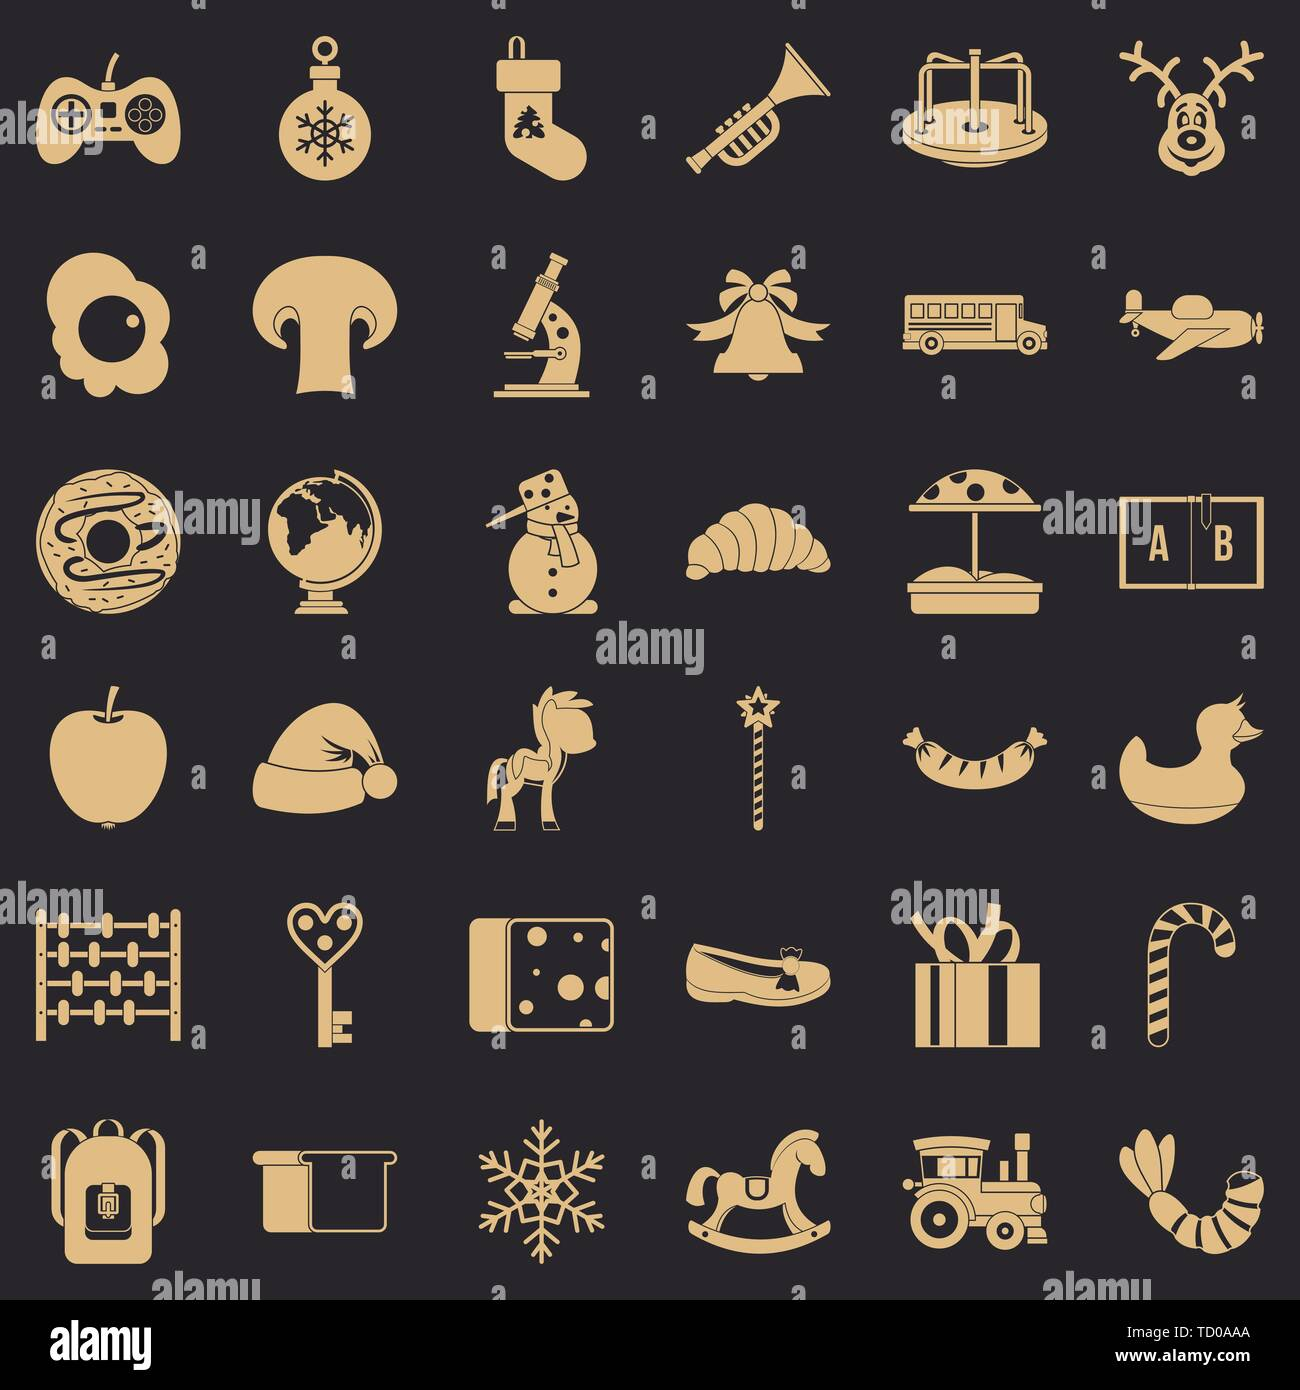 Experienced nanny icons set, simple style - Stock Image